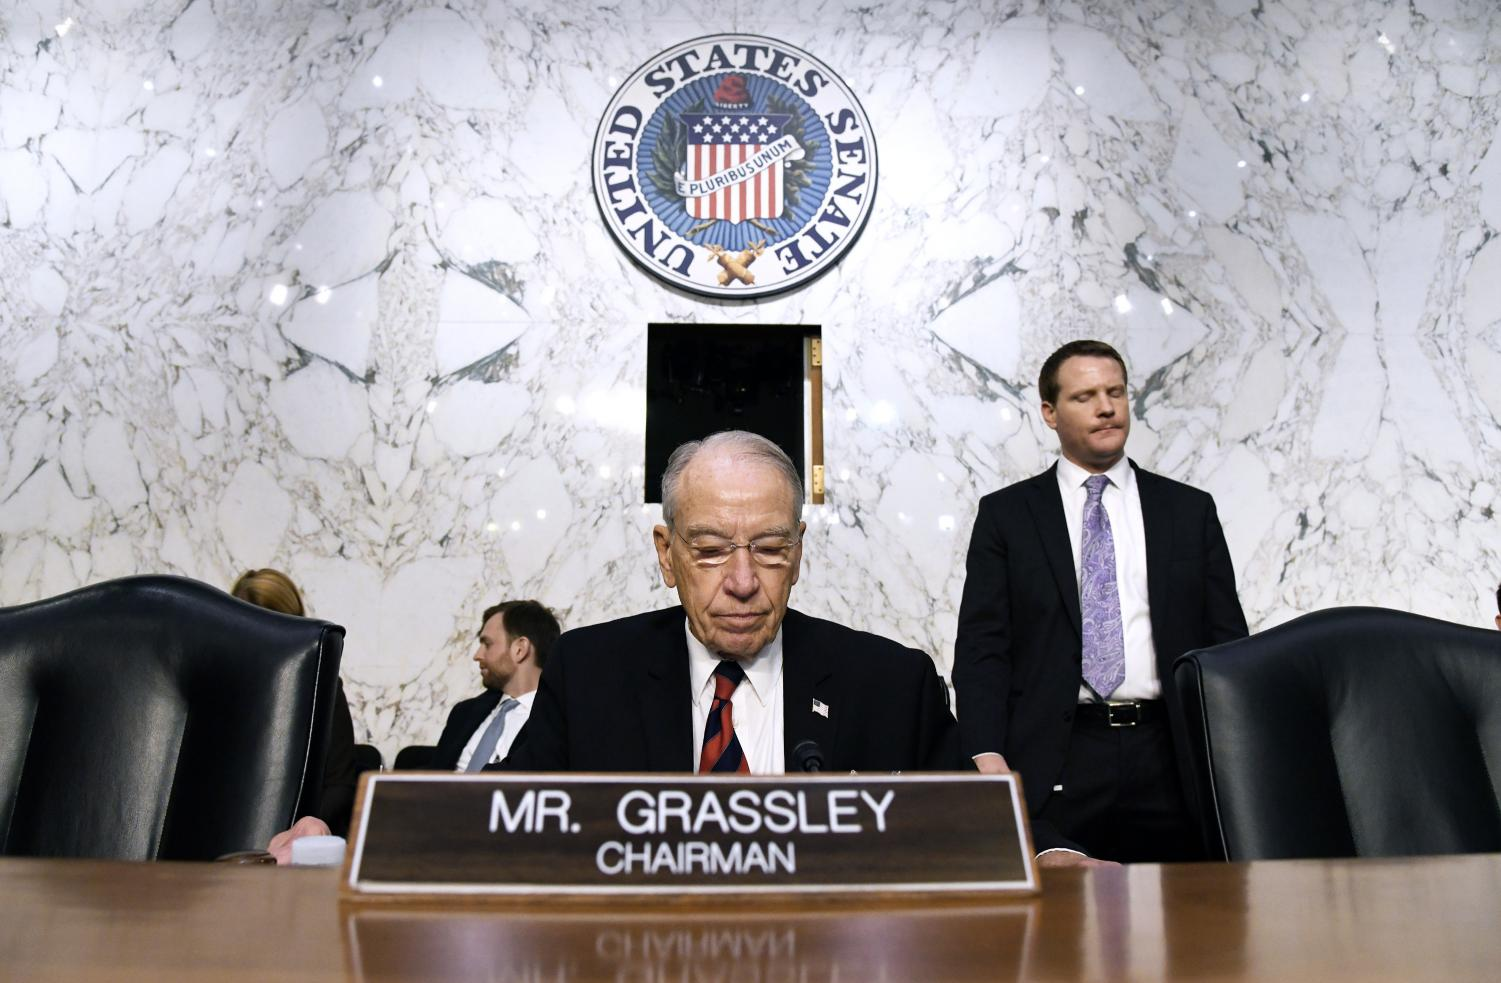 Senate Judiciary Committee Chairman Chuck Grassley looks on before the confirmation hearings of Supreme Court nominee Brett Kavanaugh before the Senate Judiciary Committee on Capitol Hill Sept. 4, 2018 in Washington, D.C. (Olivier Douliery/Abaca Press/TNS)